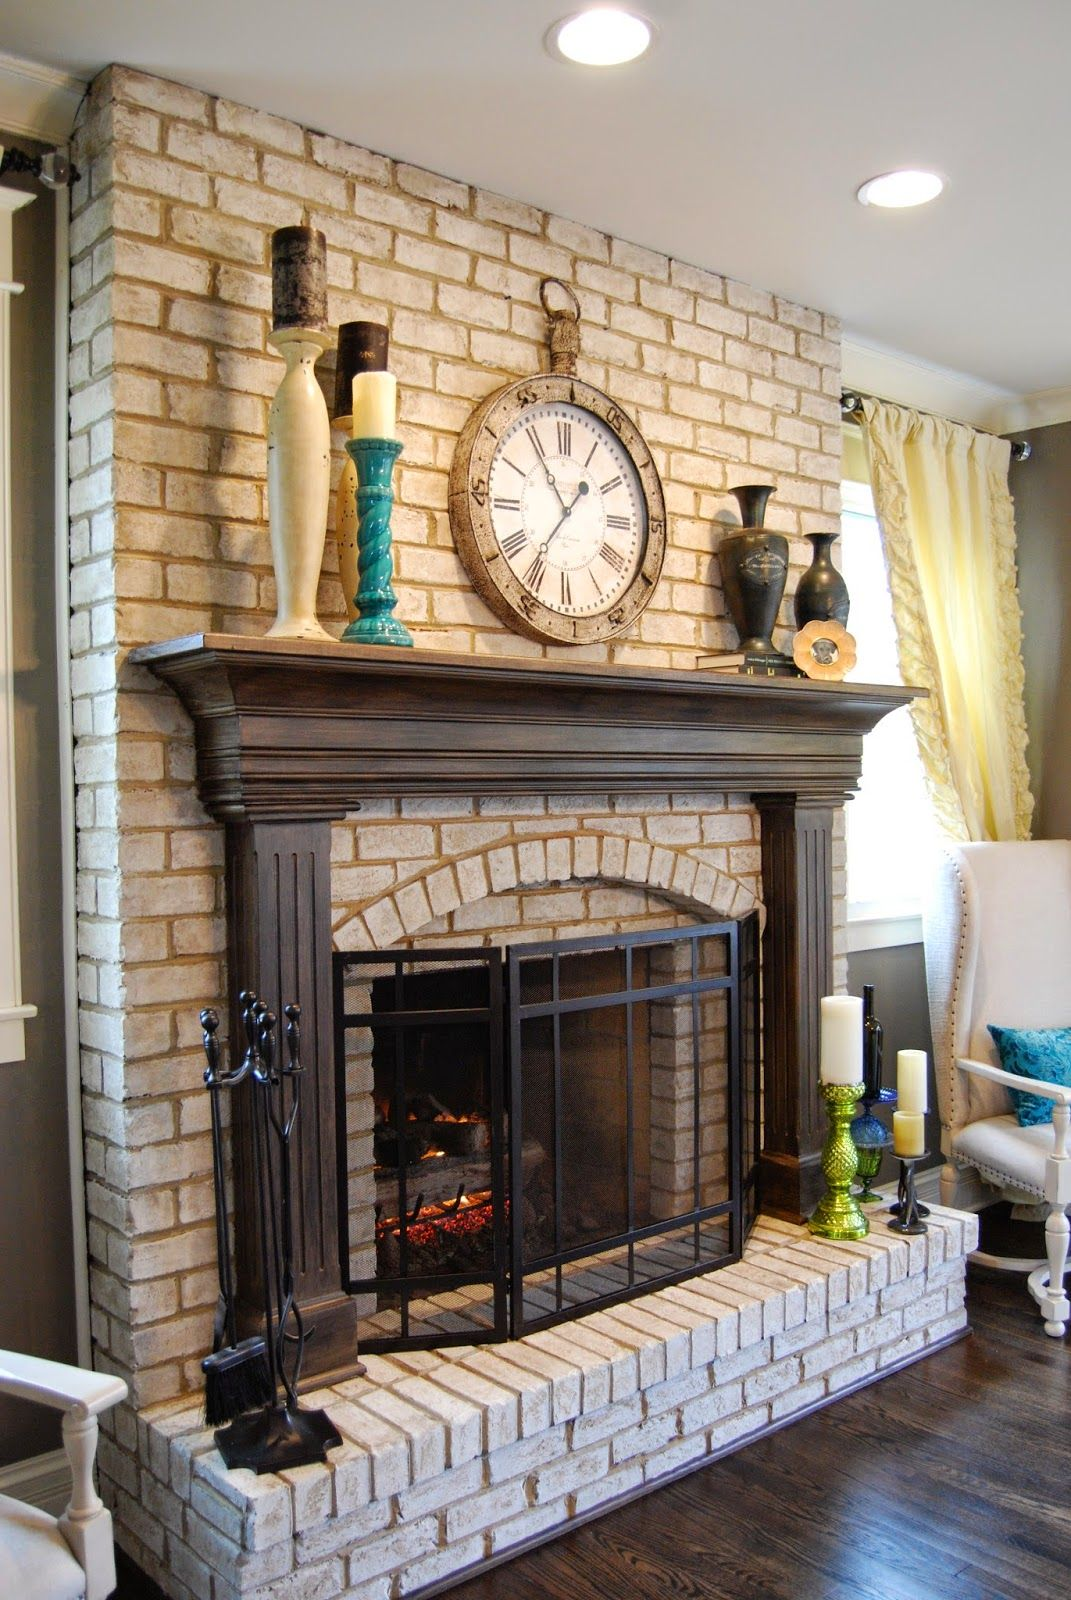 Red Brick Fireplace With White Mantel Repainted For A Cozy Feel Love Eating In Front Of The Cvbryant1 Is Painting Dess 3